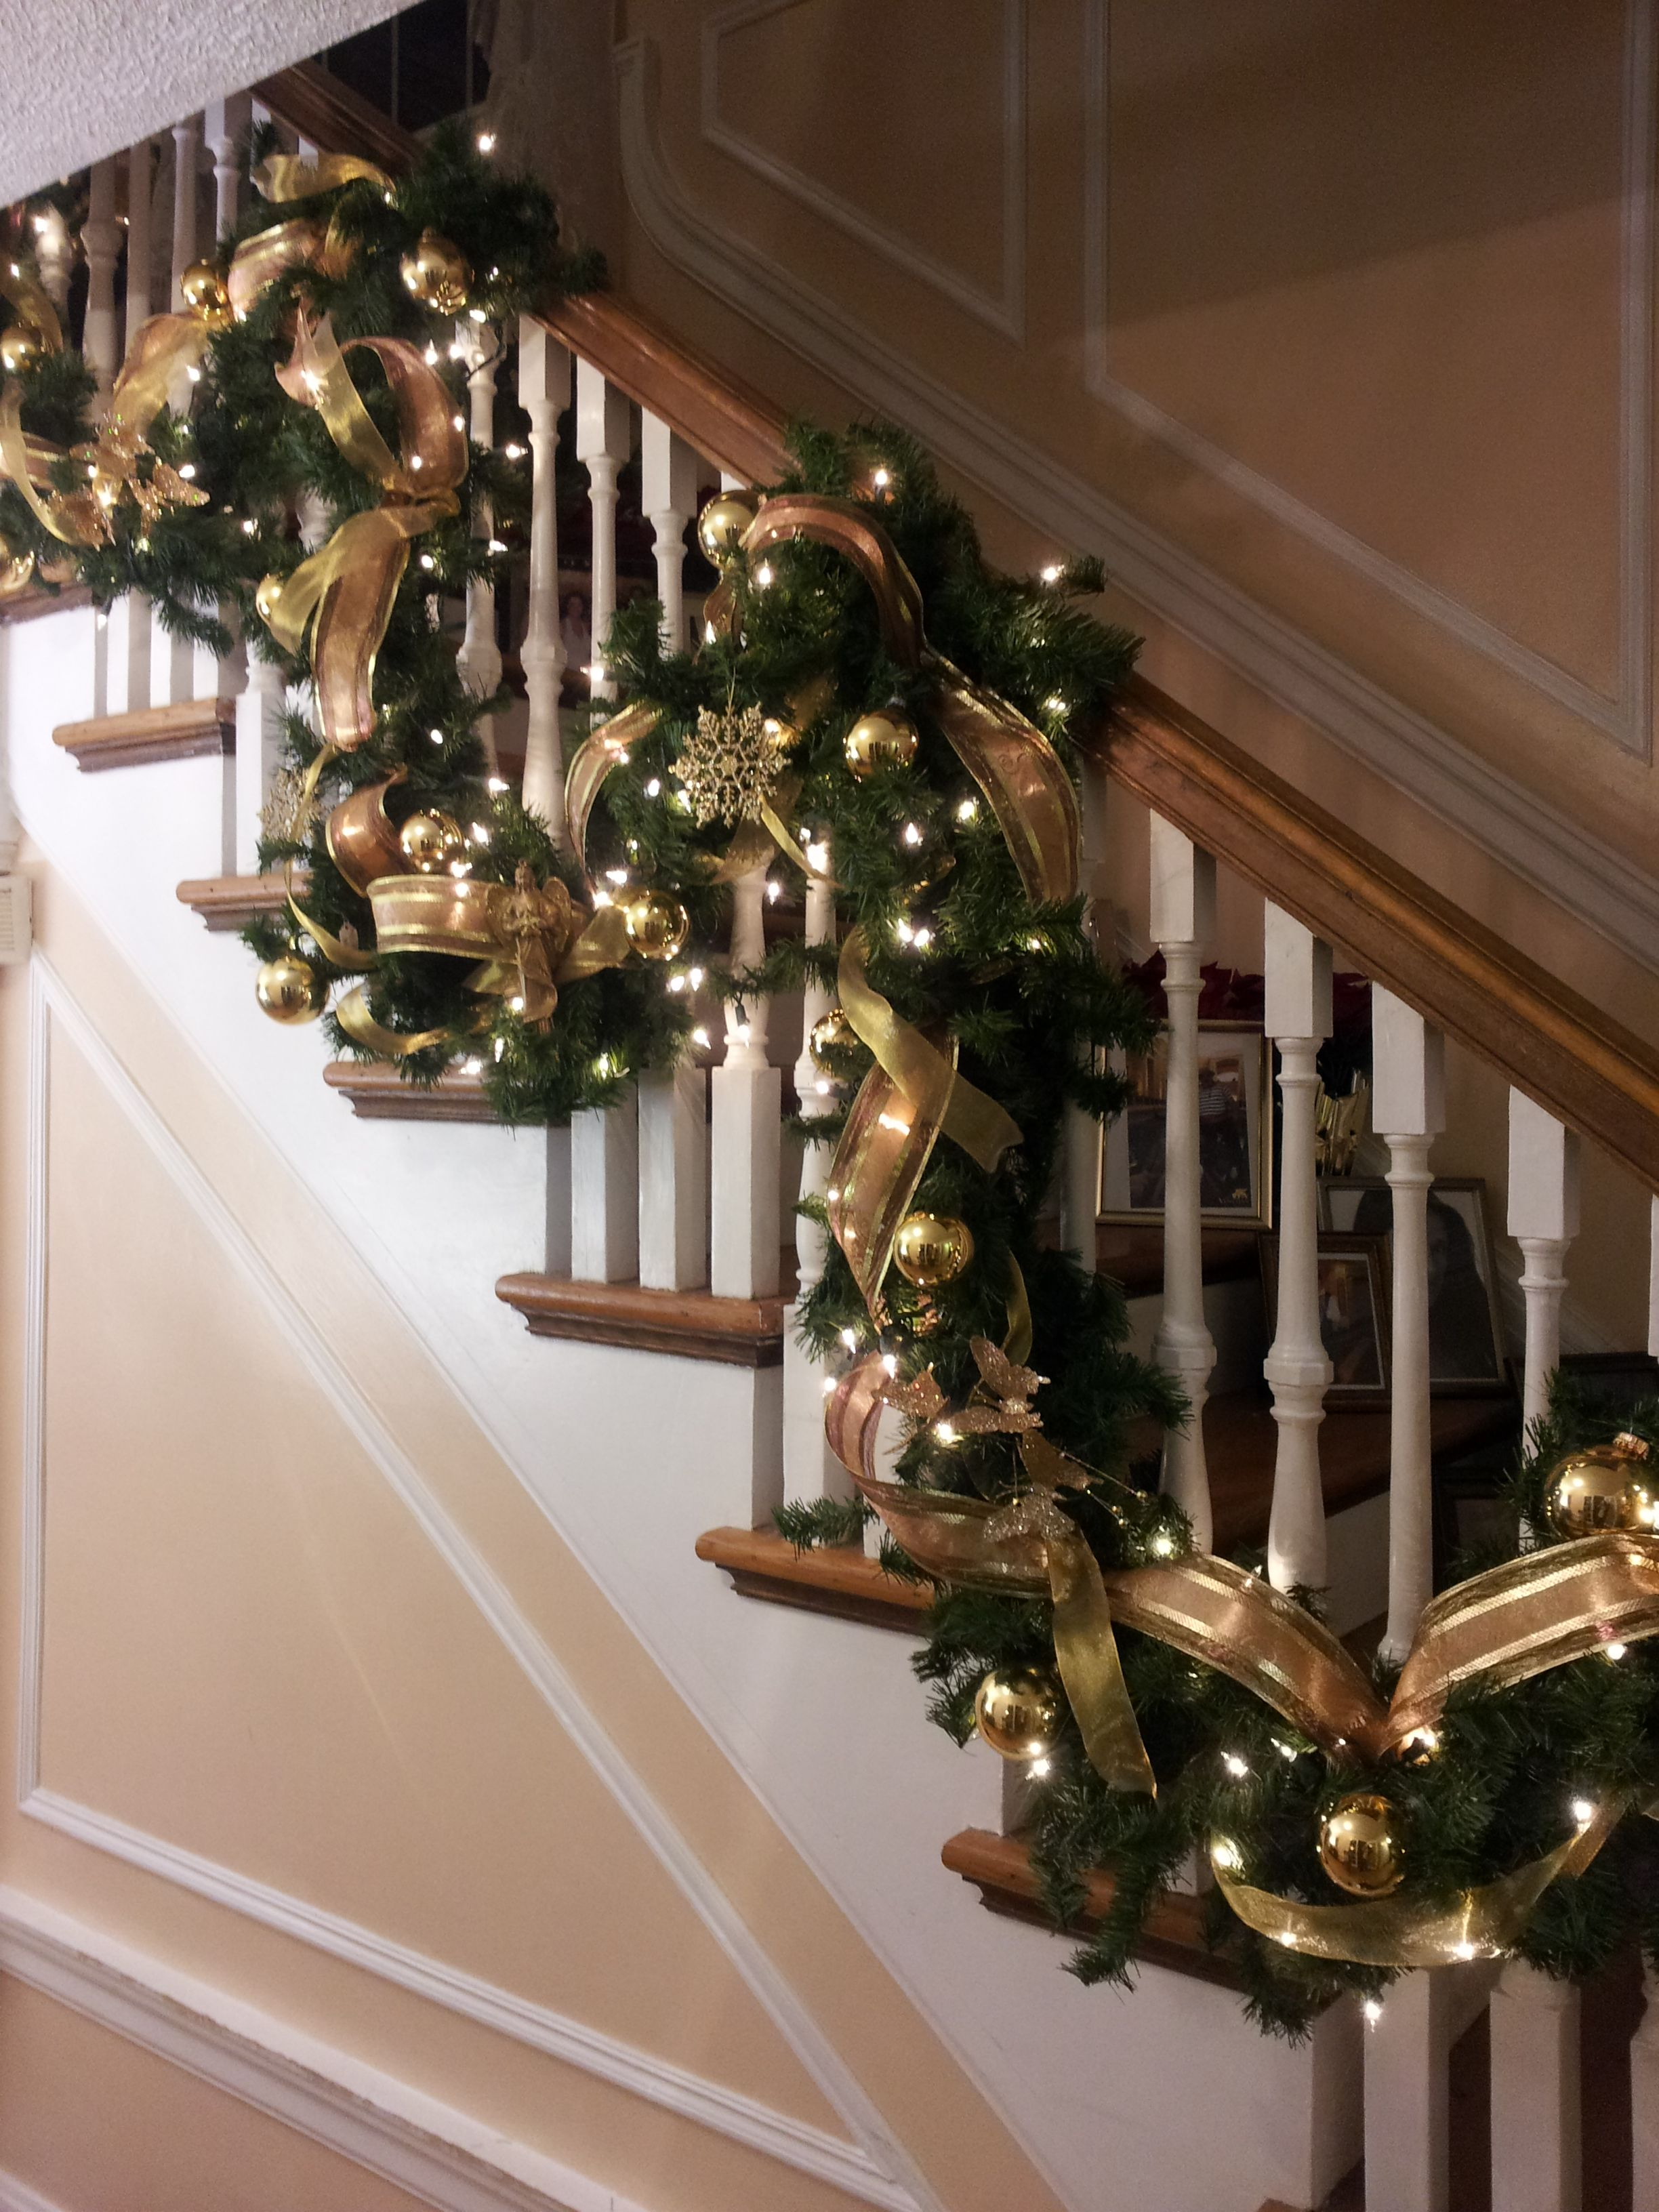 Christmas Garland Banister Maybe Do The Red Plaid Bows As Well